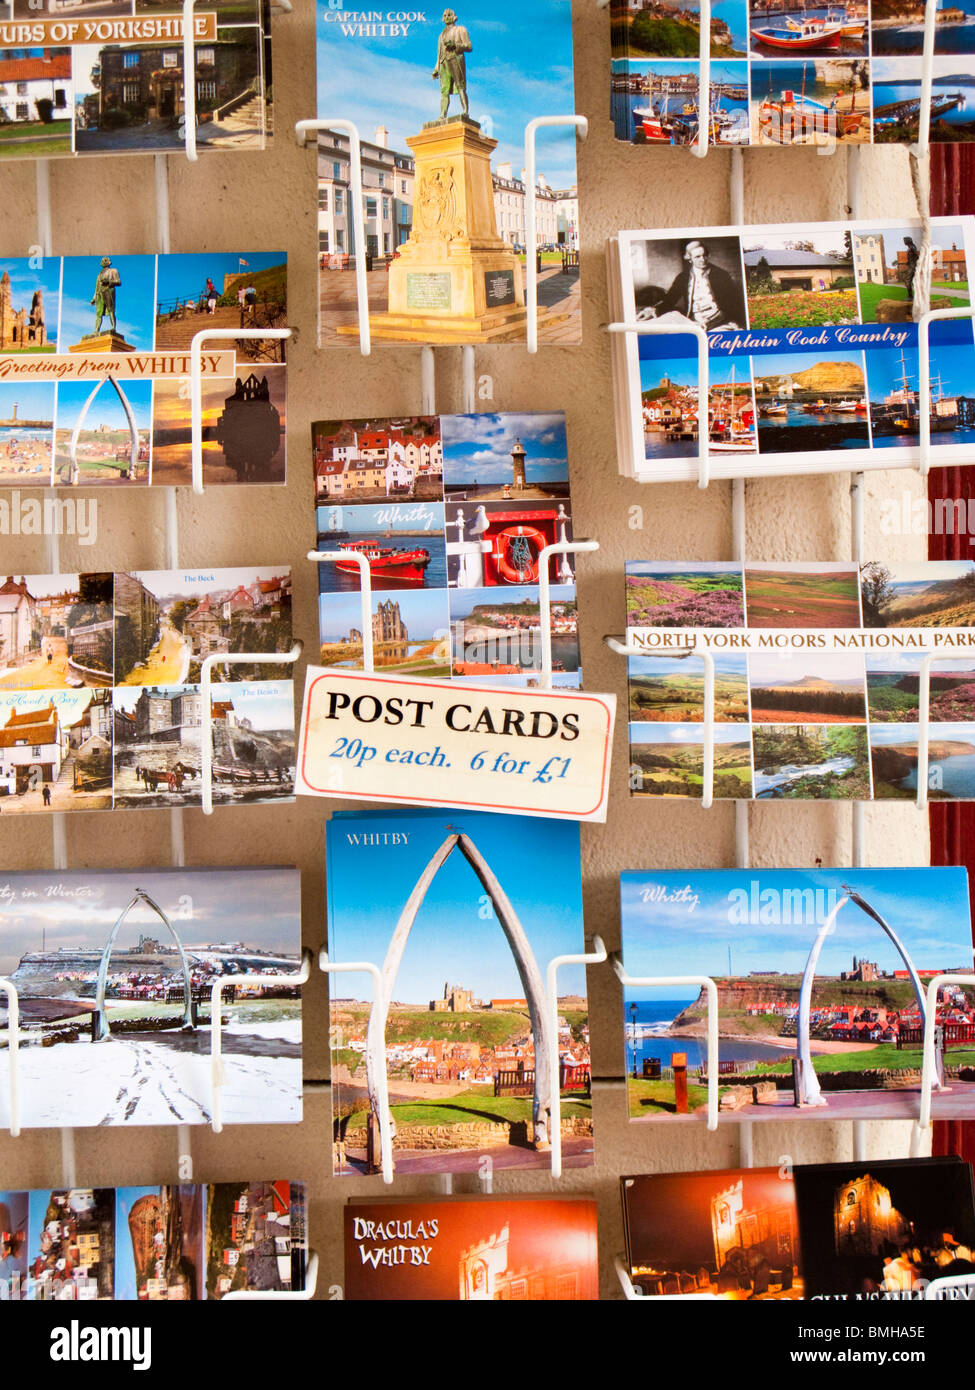 Postcards on a rack, Whitby, UK - Stock Image